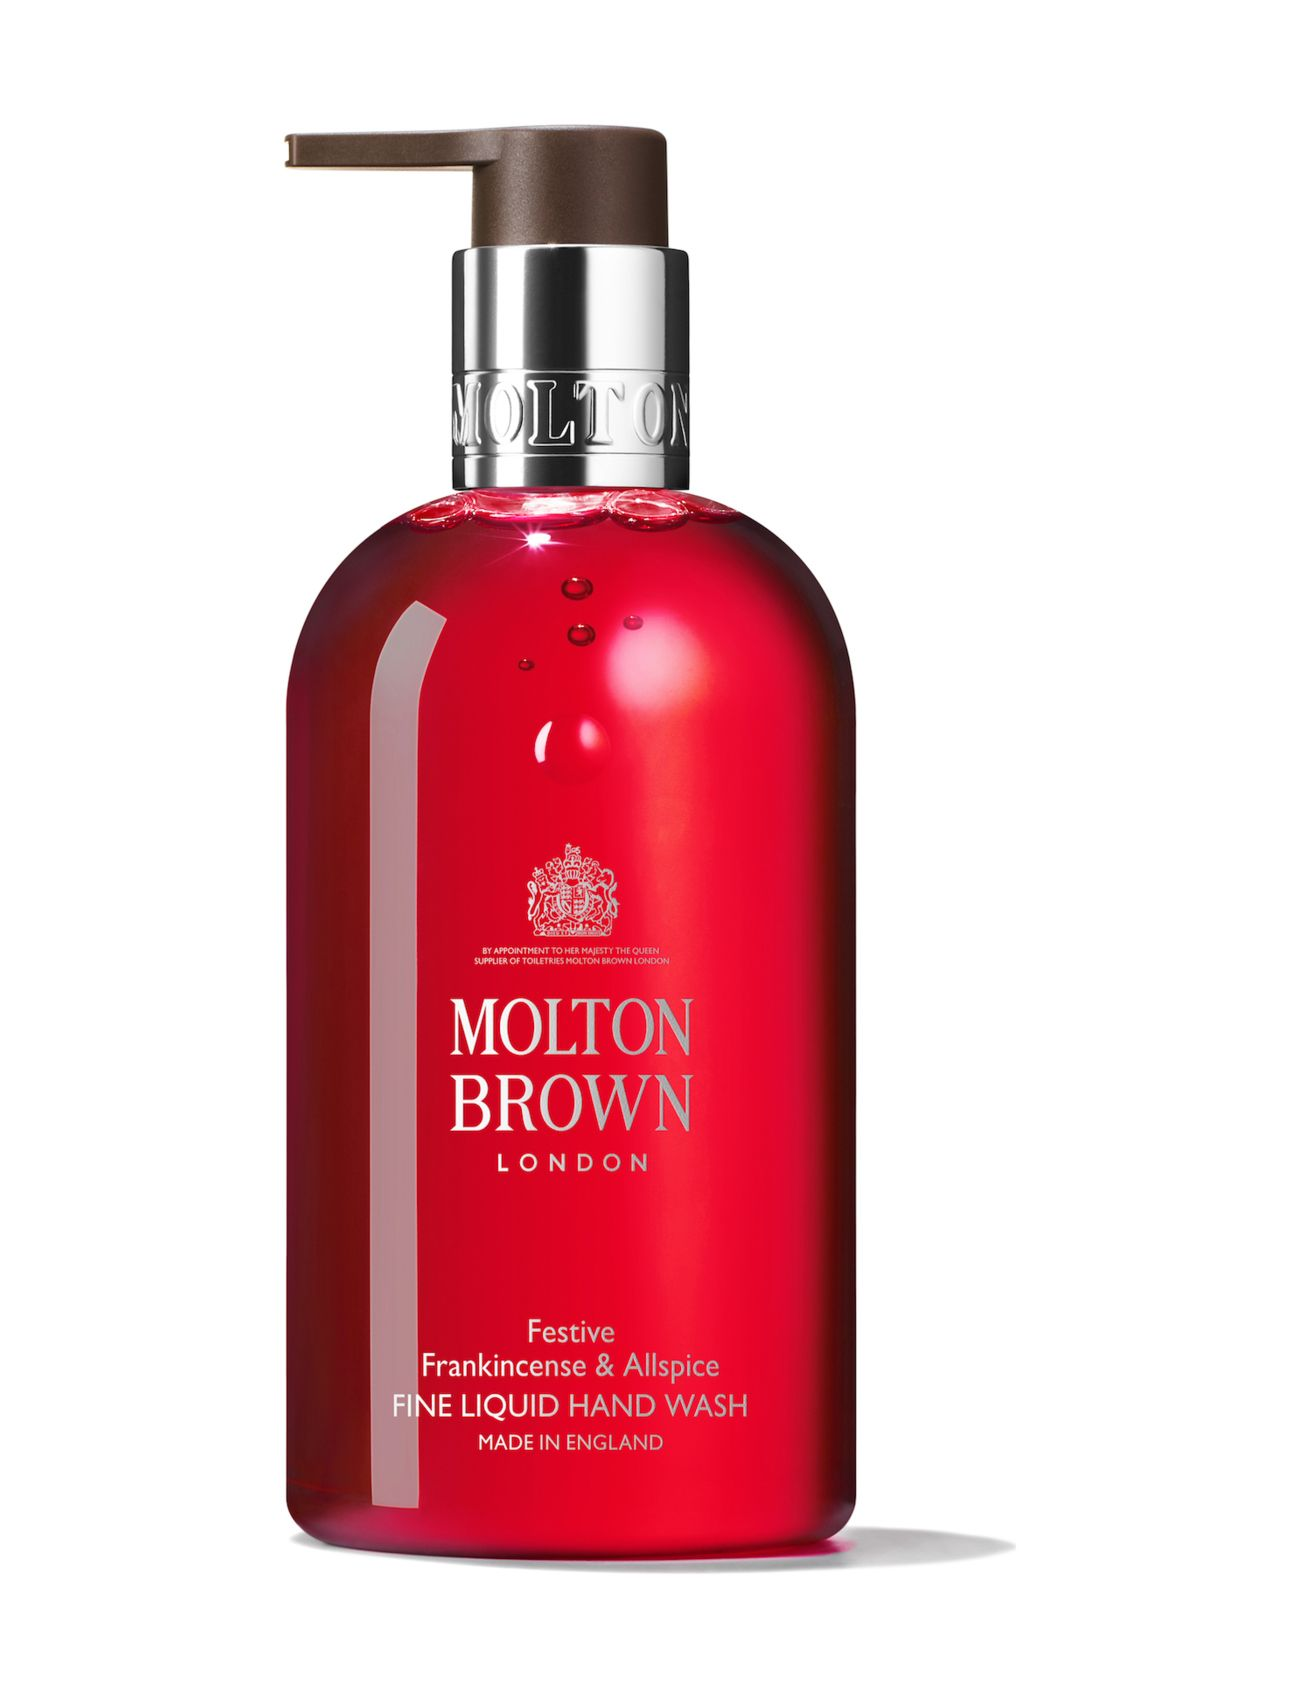 Molton Brown Festive Frankincense & Allspice Fine Liquid Hand Wash - NO COLOUR